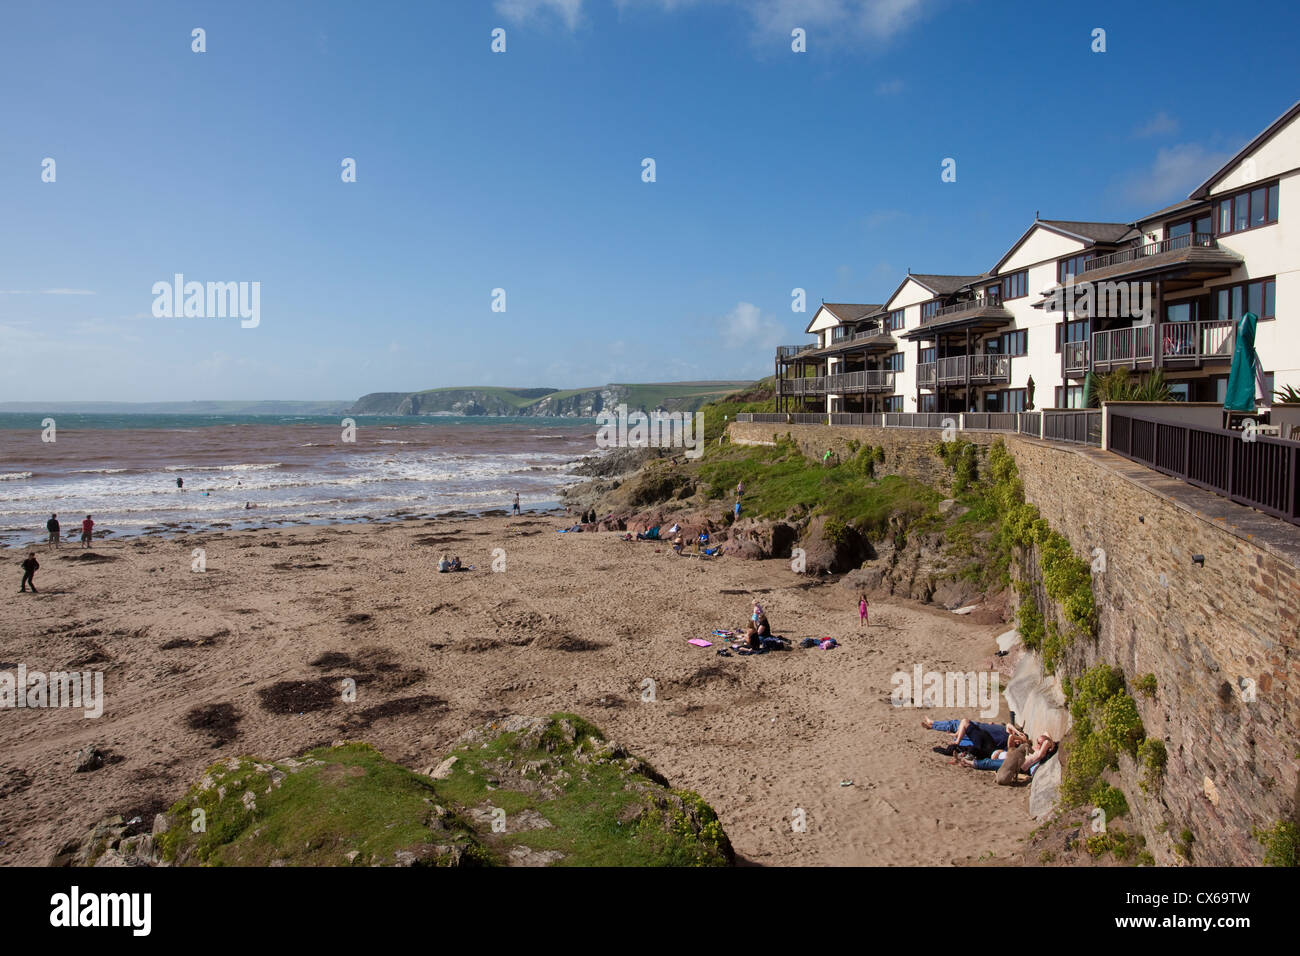 Holiday apartments overlooking the beach at Bigbury Bay, Bigbury-On-Sea looking out towards Burgh Island, Devon, - Stock Image